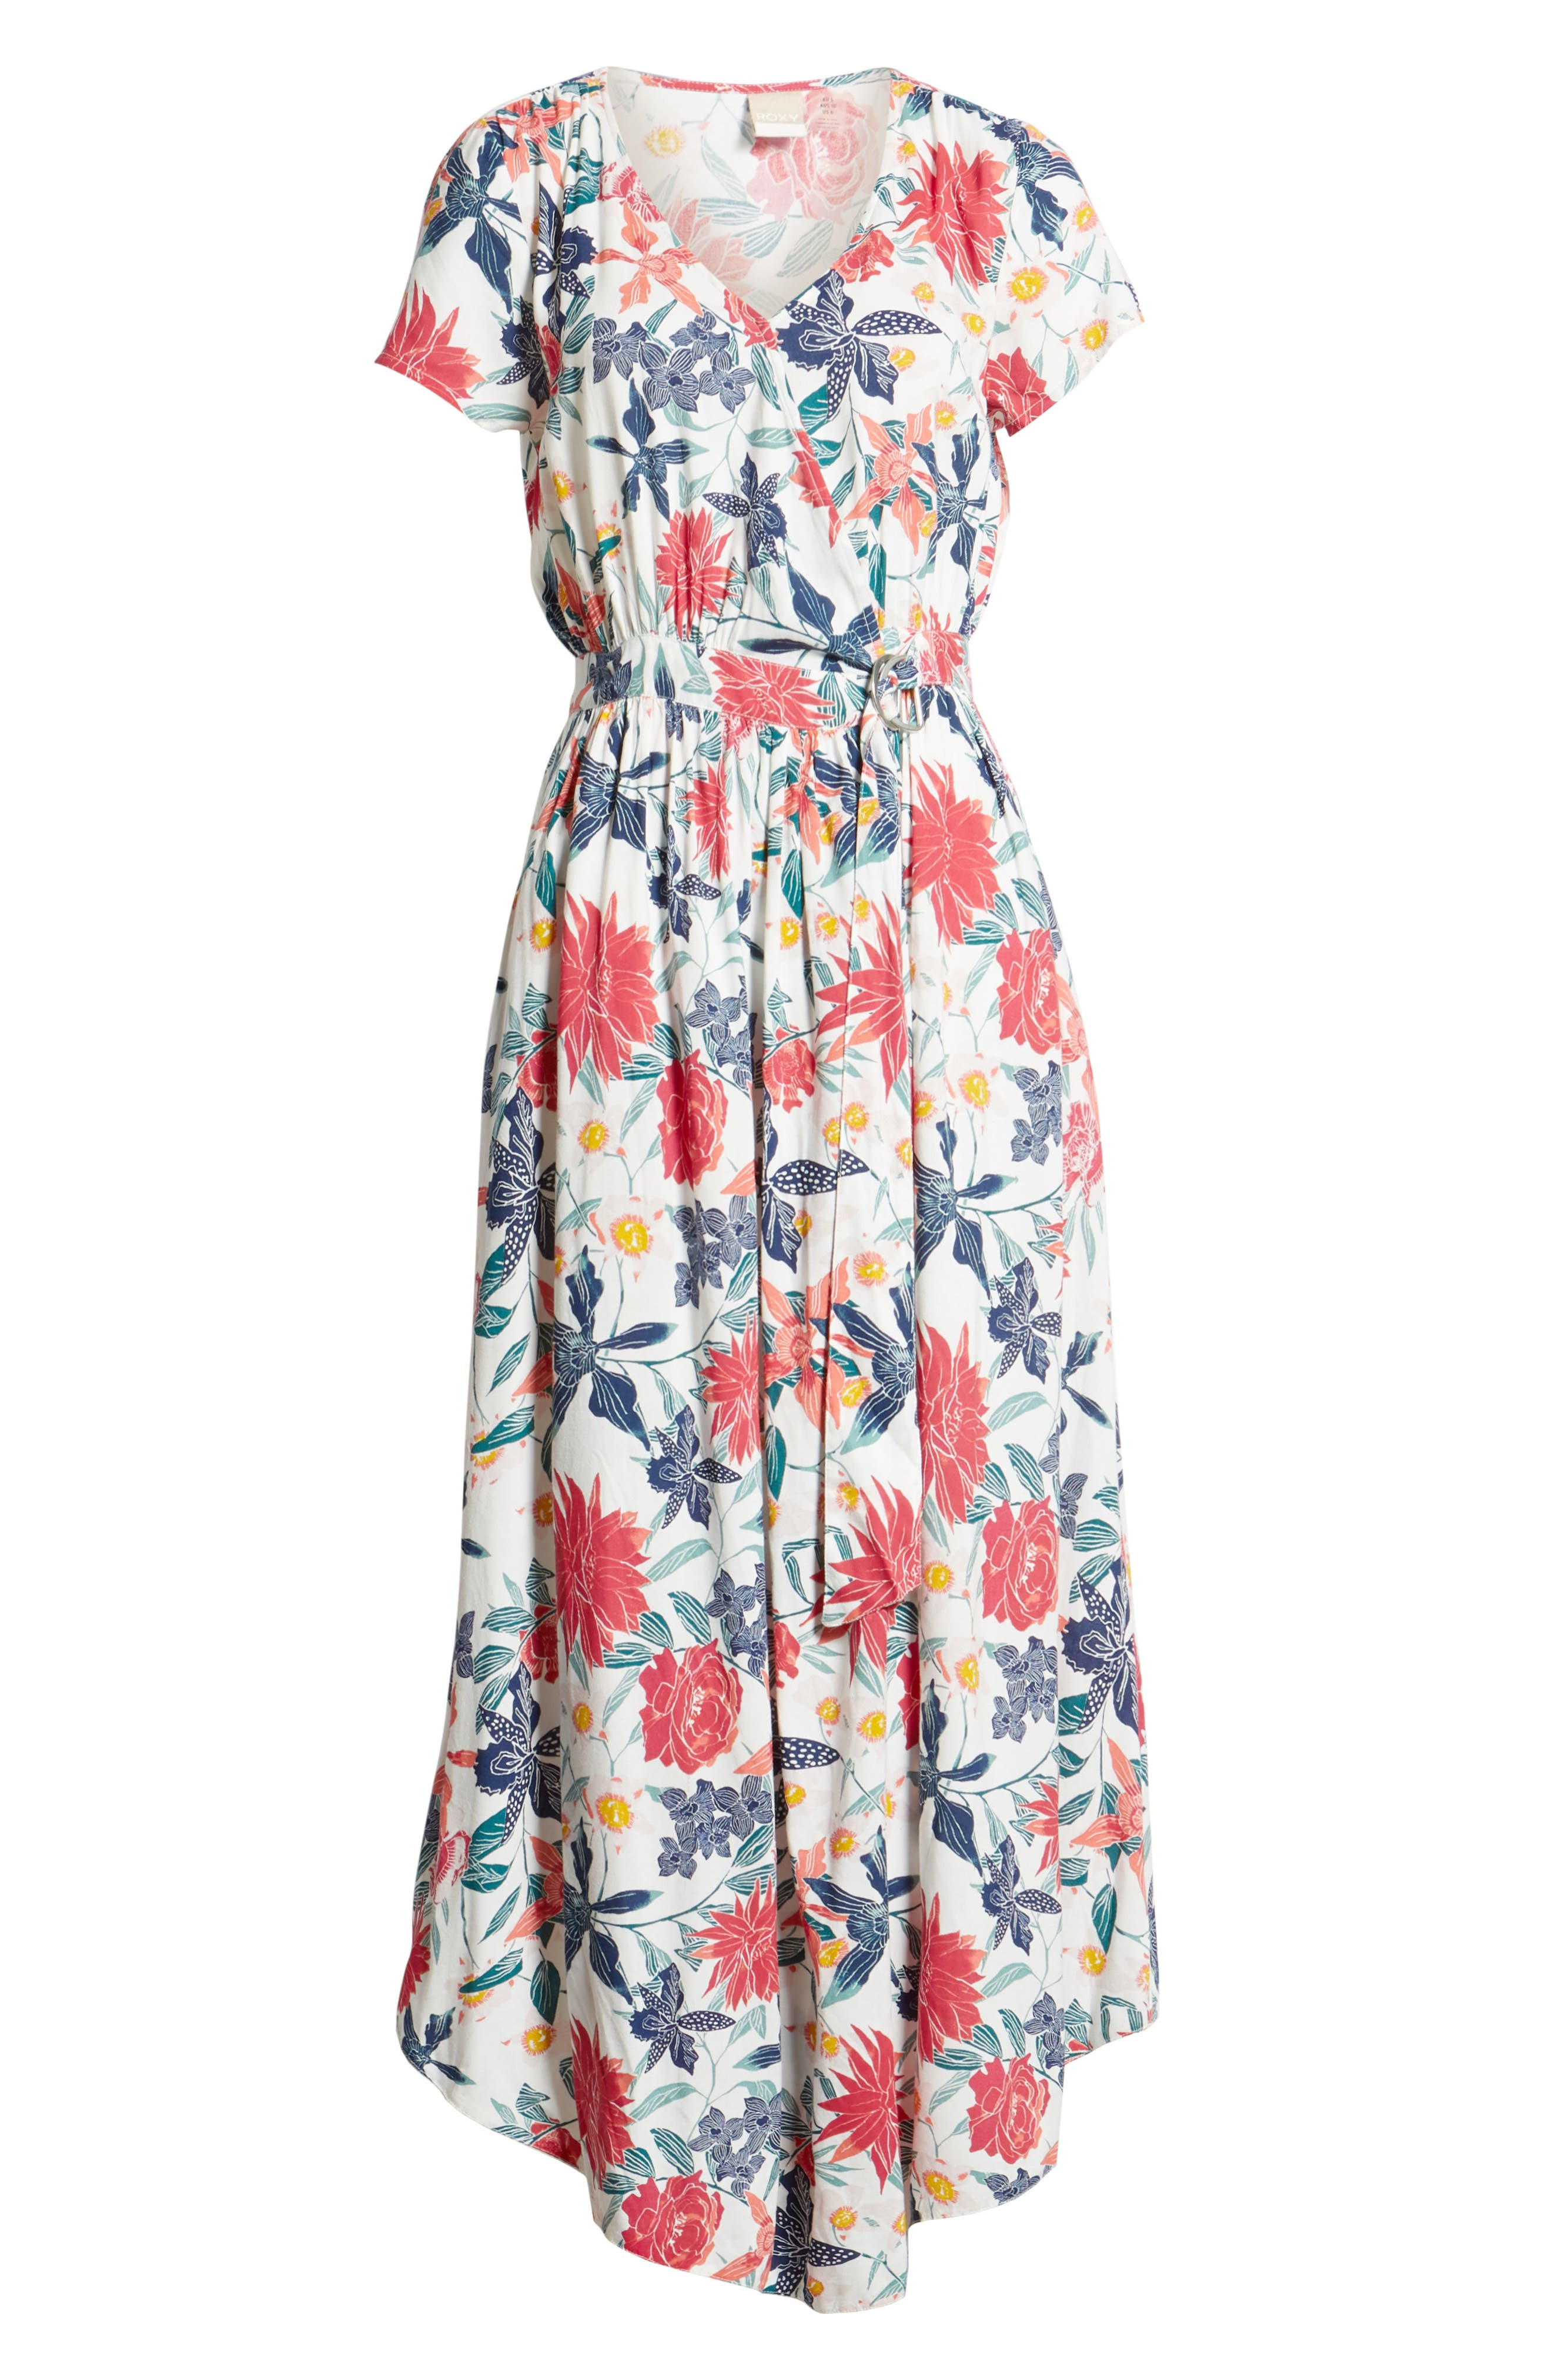 District Nights Floral Print Dress,                             Alternate thumbnail 8, color,                             MARSHMALLOW TALLOWS